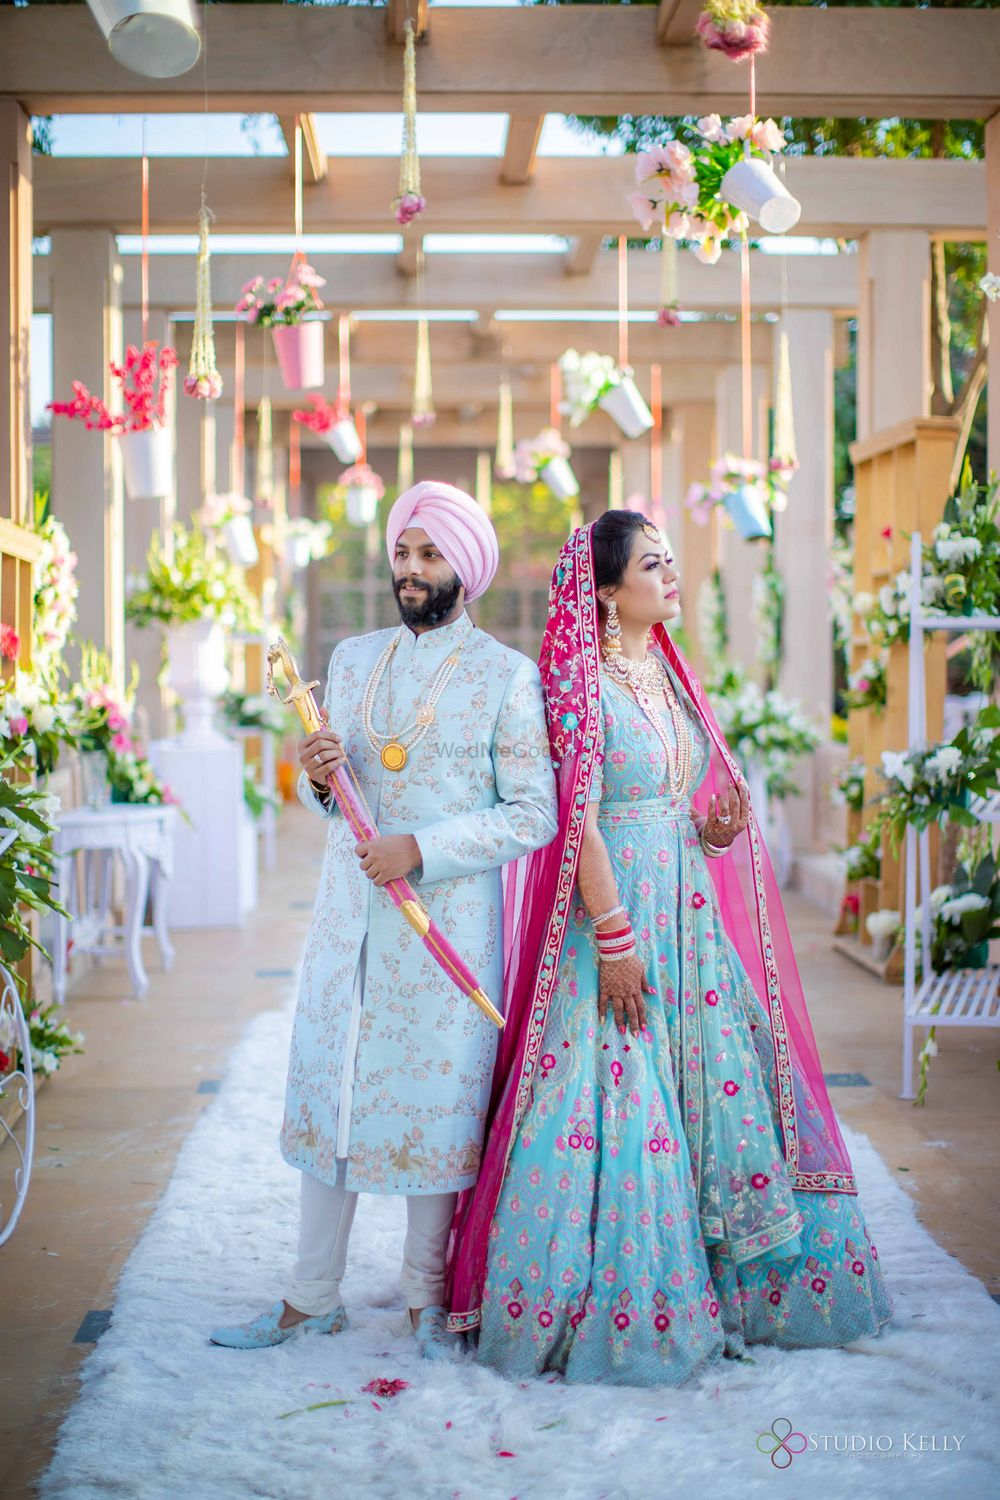 Photo of sikh couple shot with both of them in powder blue outfits